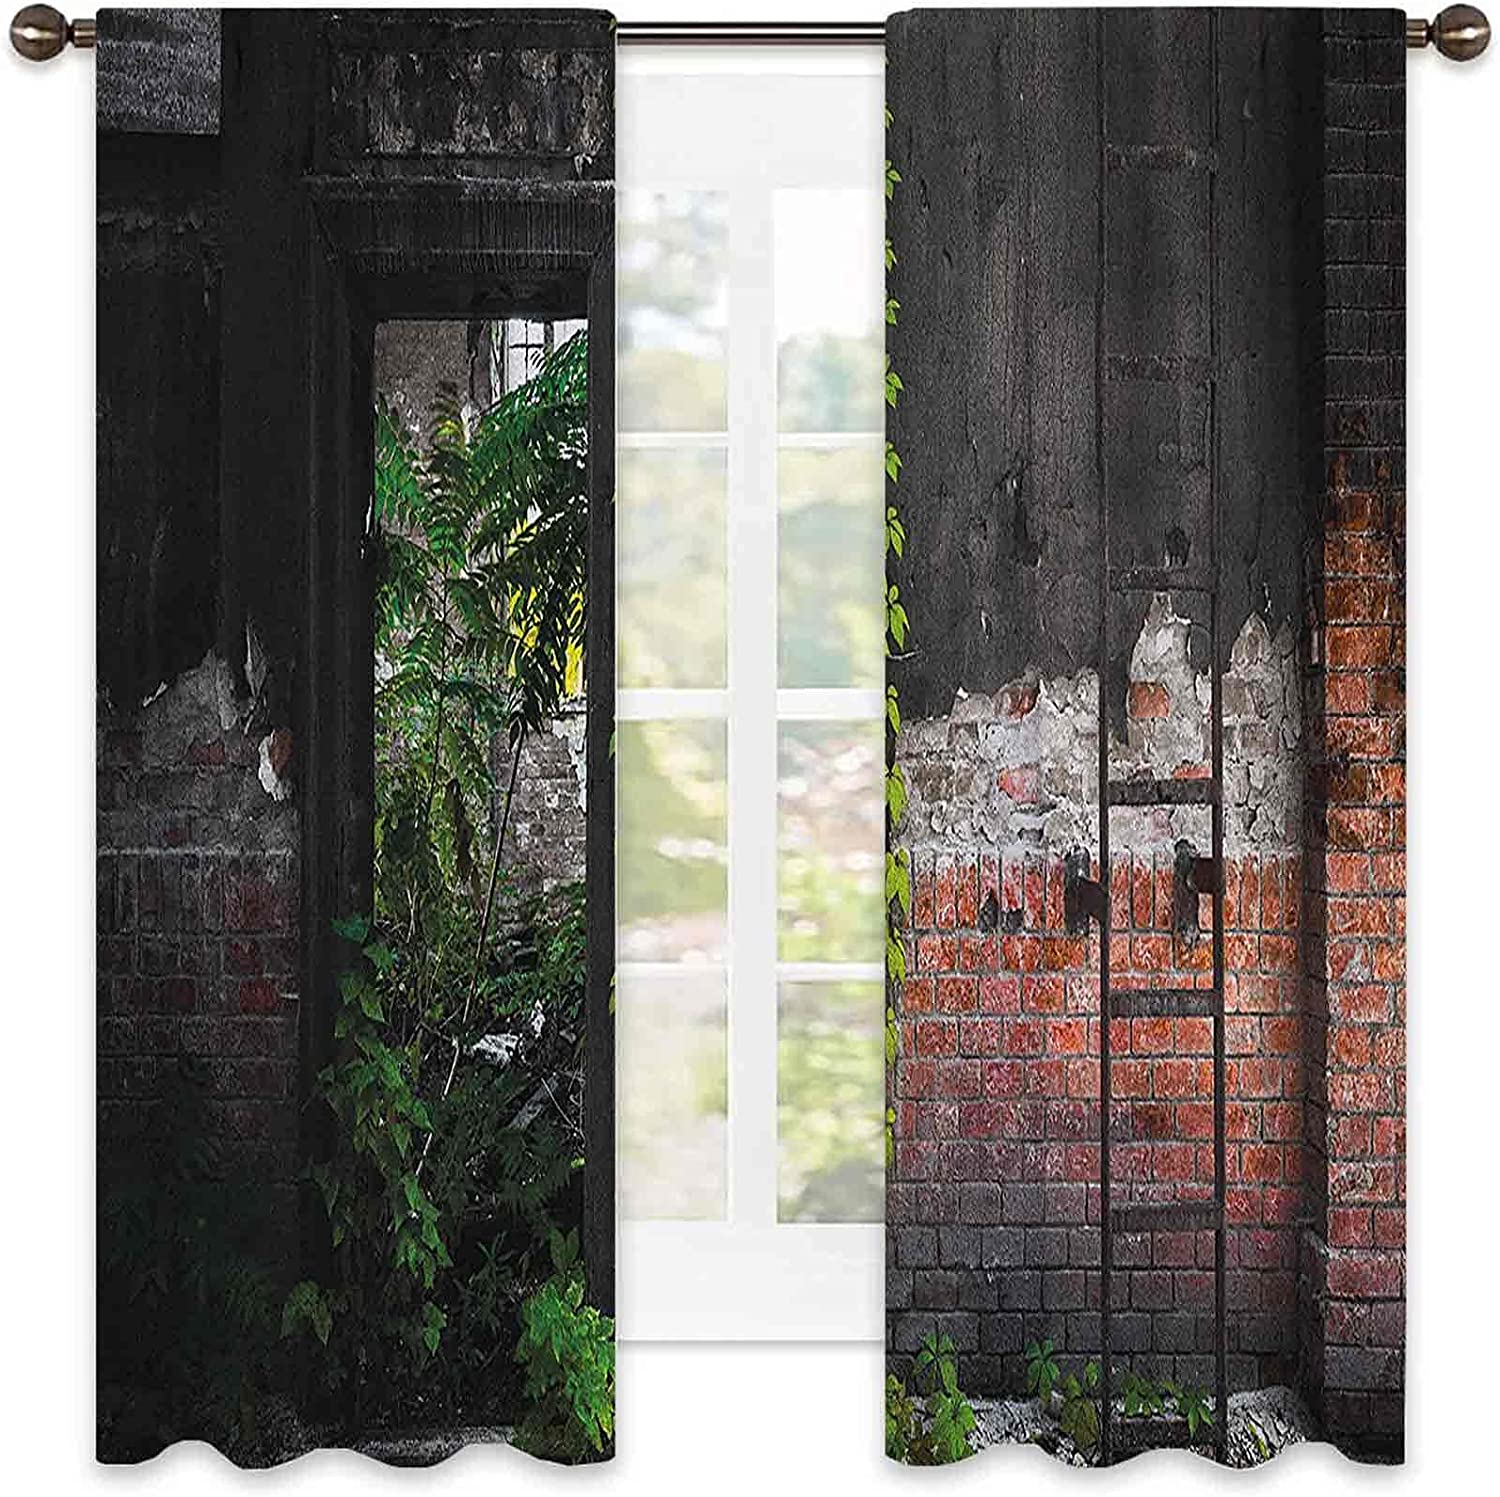 Industrial Shading Insulated Curtain Max 69% OFF Old a Door Deso Max 78% OFF in Opening